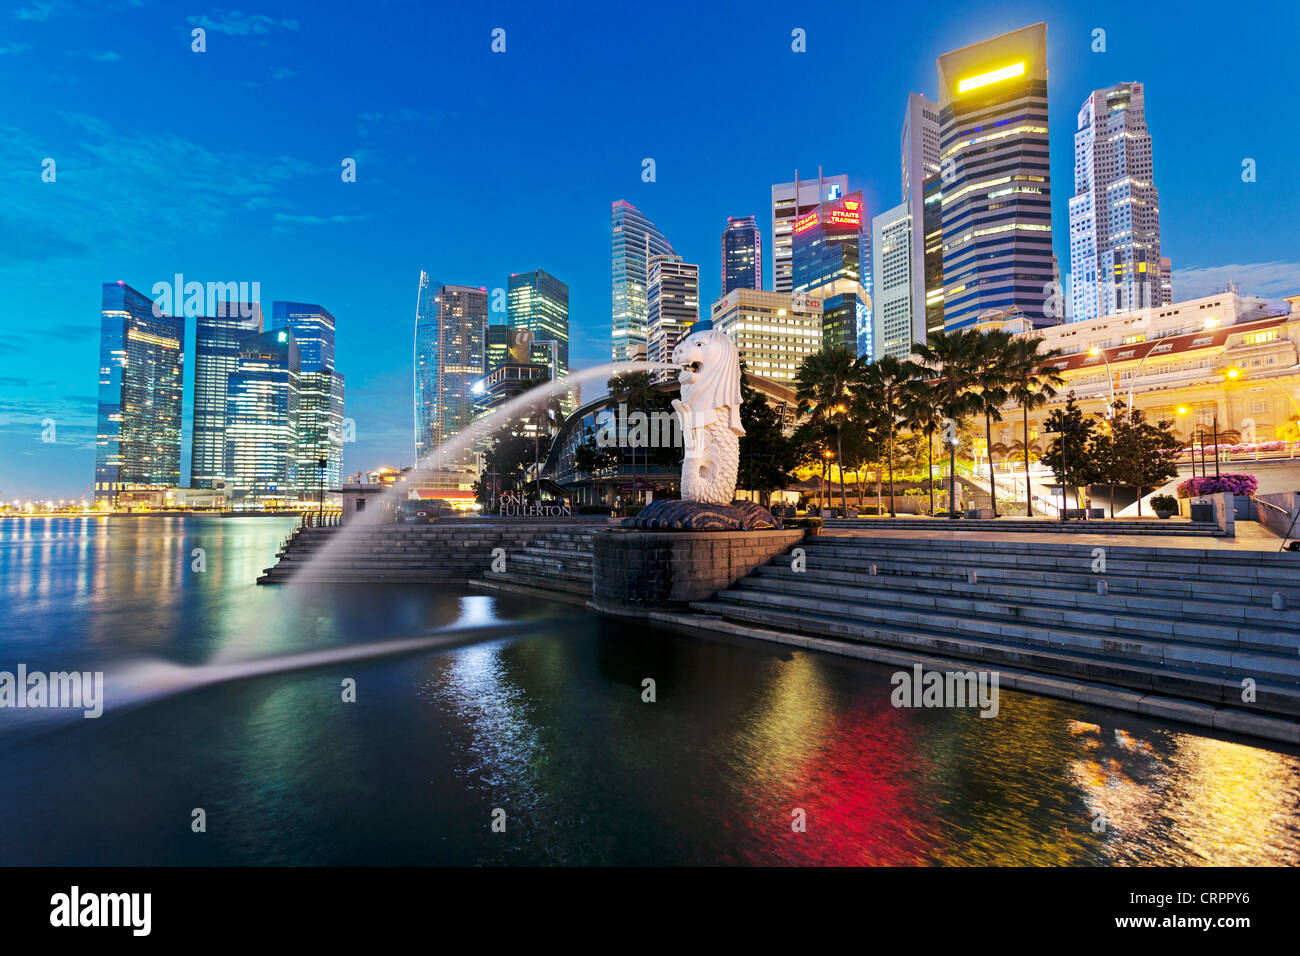 La statua Merlion con lo skyline della città in background, Marina Bay, Singapore, Sud-est asiatico Immagini Stock